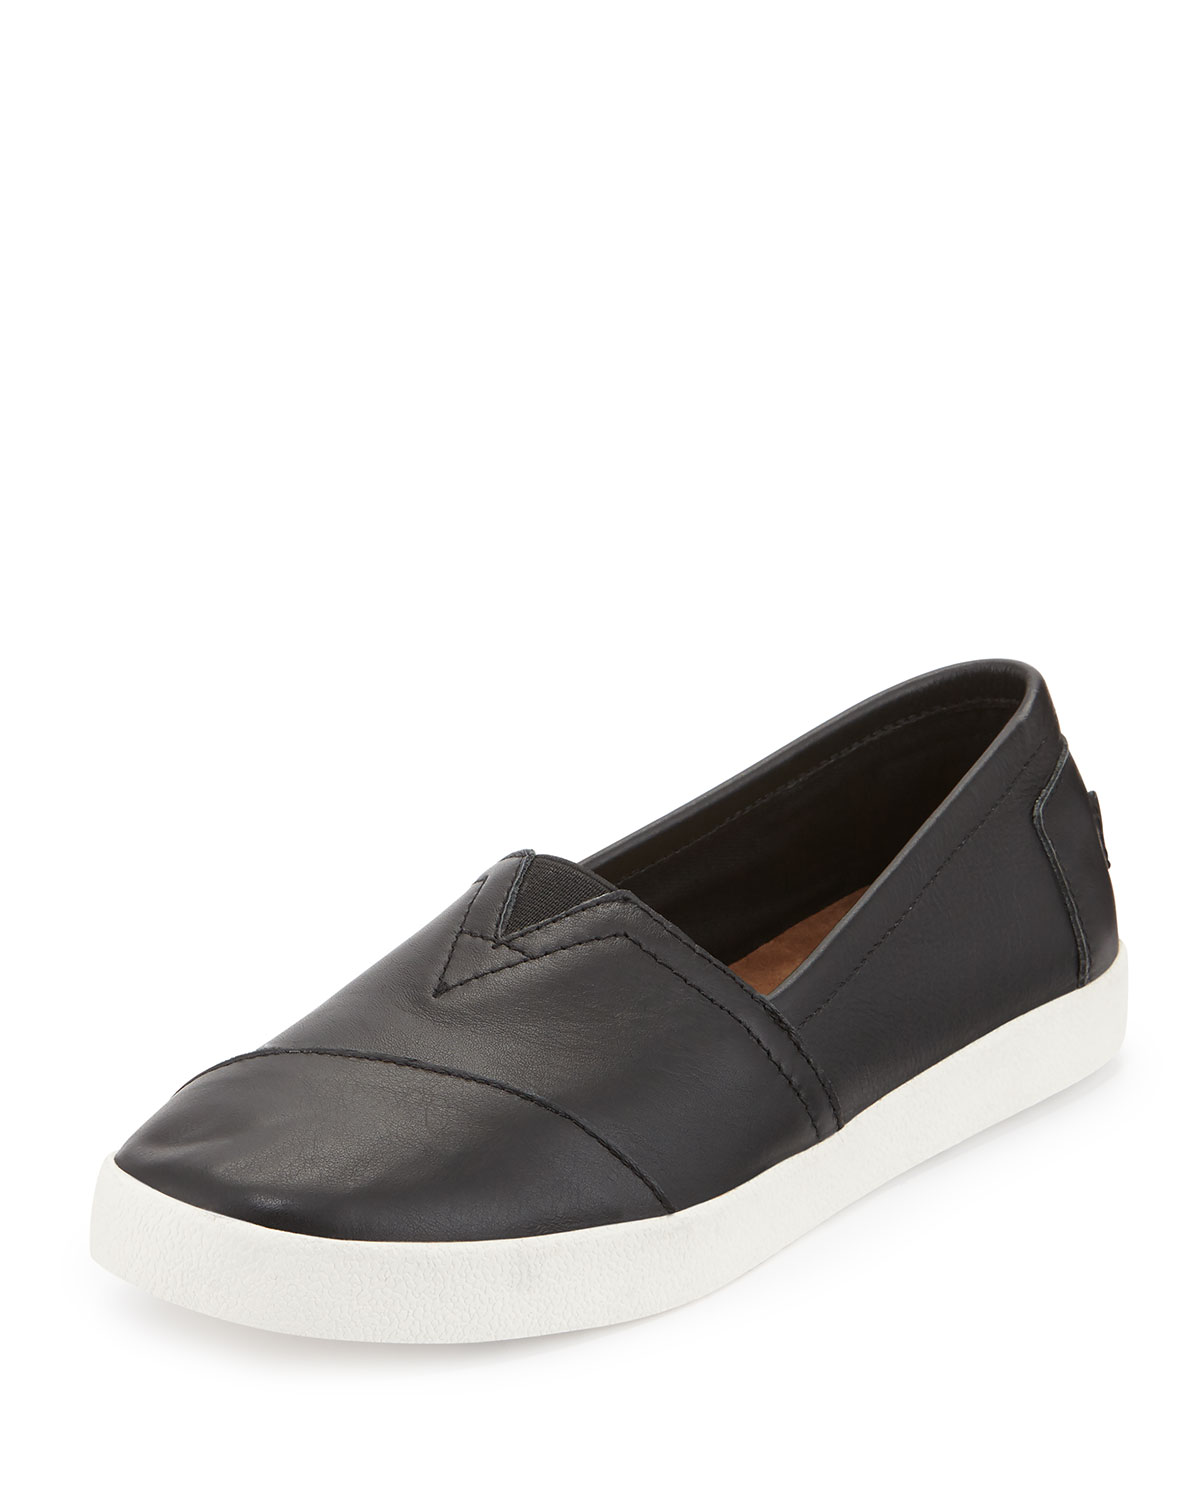 615951efee1b TOMS Avalon Leather Slip-On Sneaker